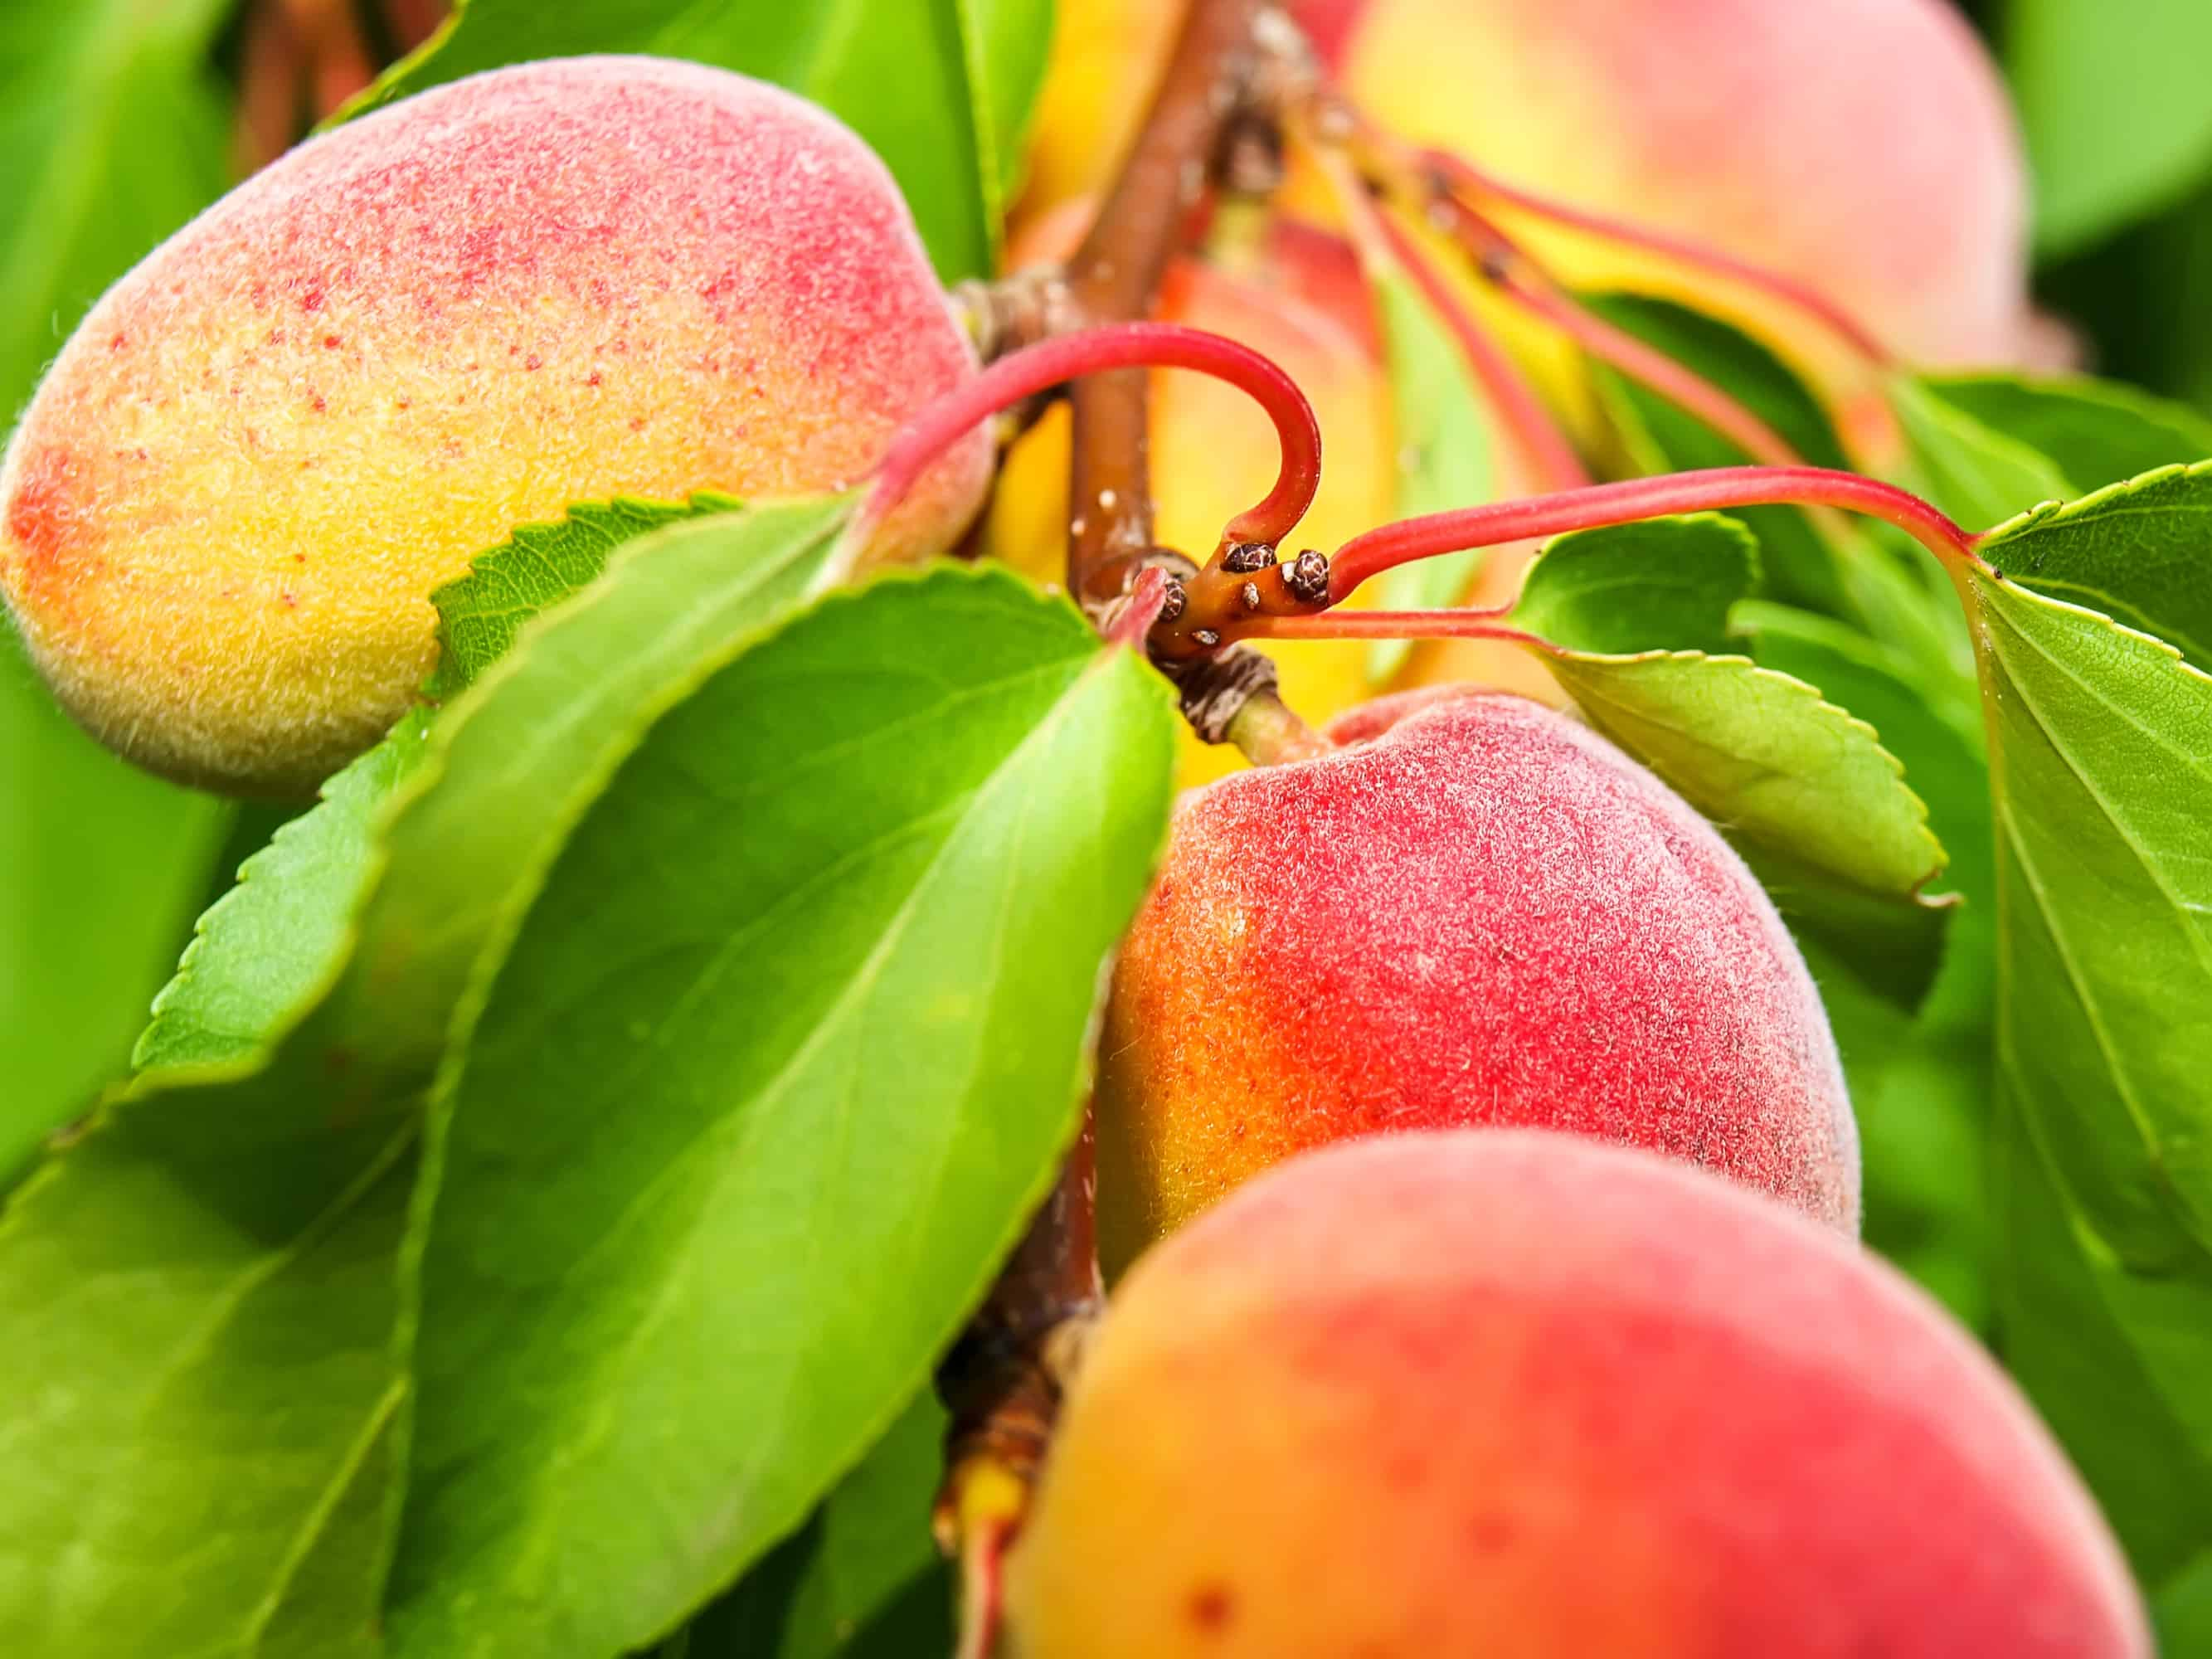 Growing apricots